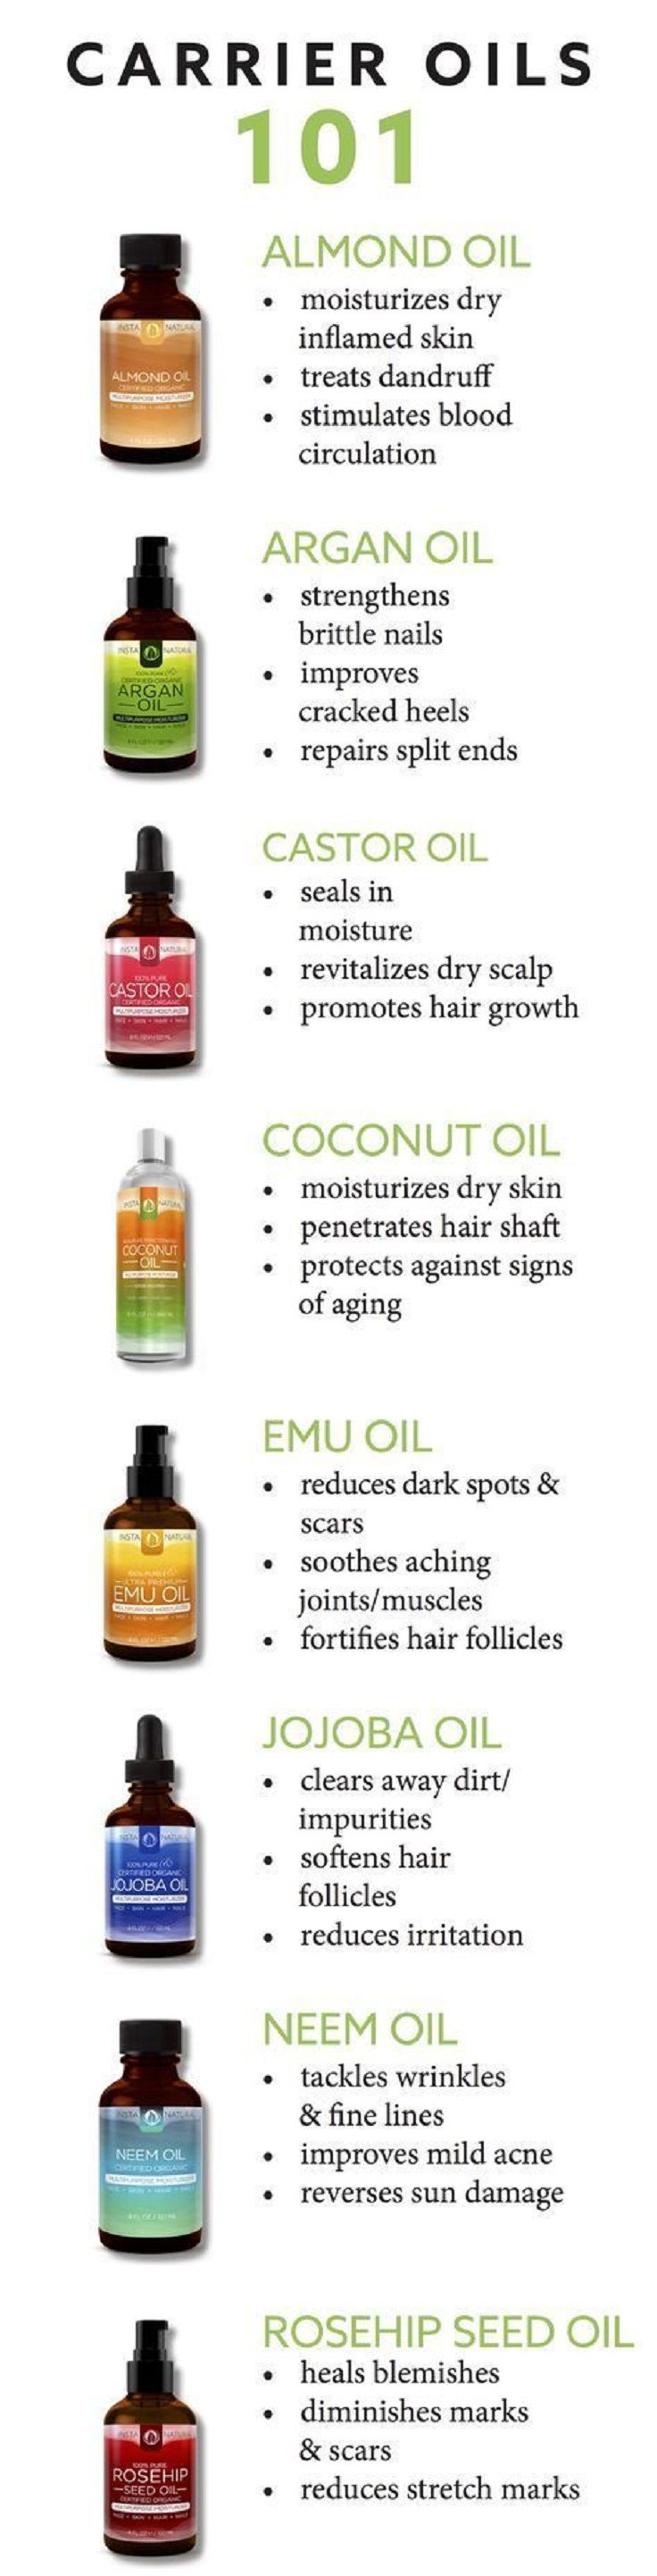 Carrier Oils Benefits for Body and Skin - 16 Recommended Skin Care Routine Tips and DIYs for A Healthy Glow This Summer